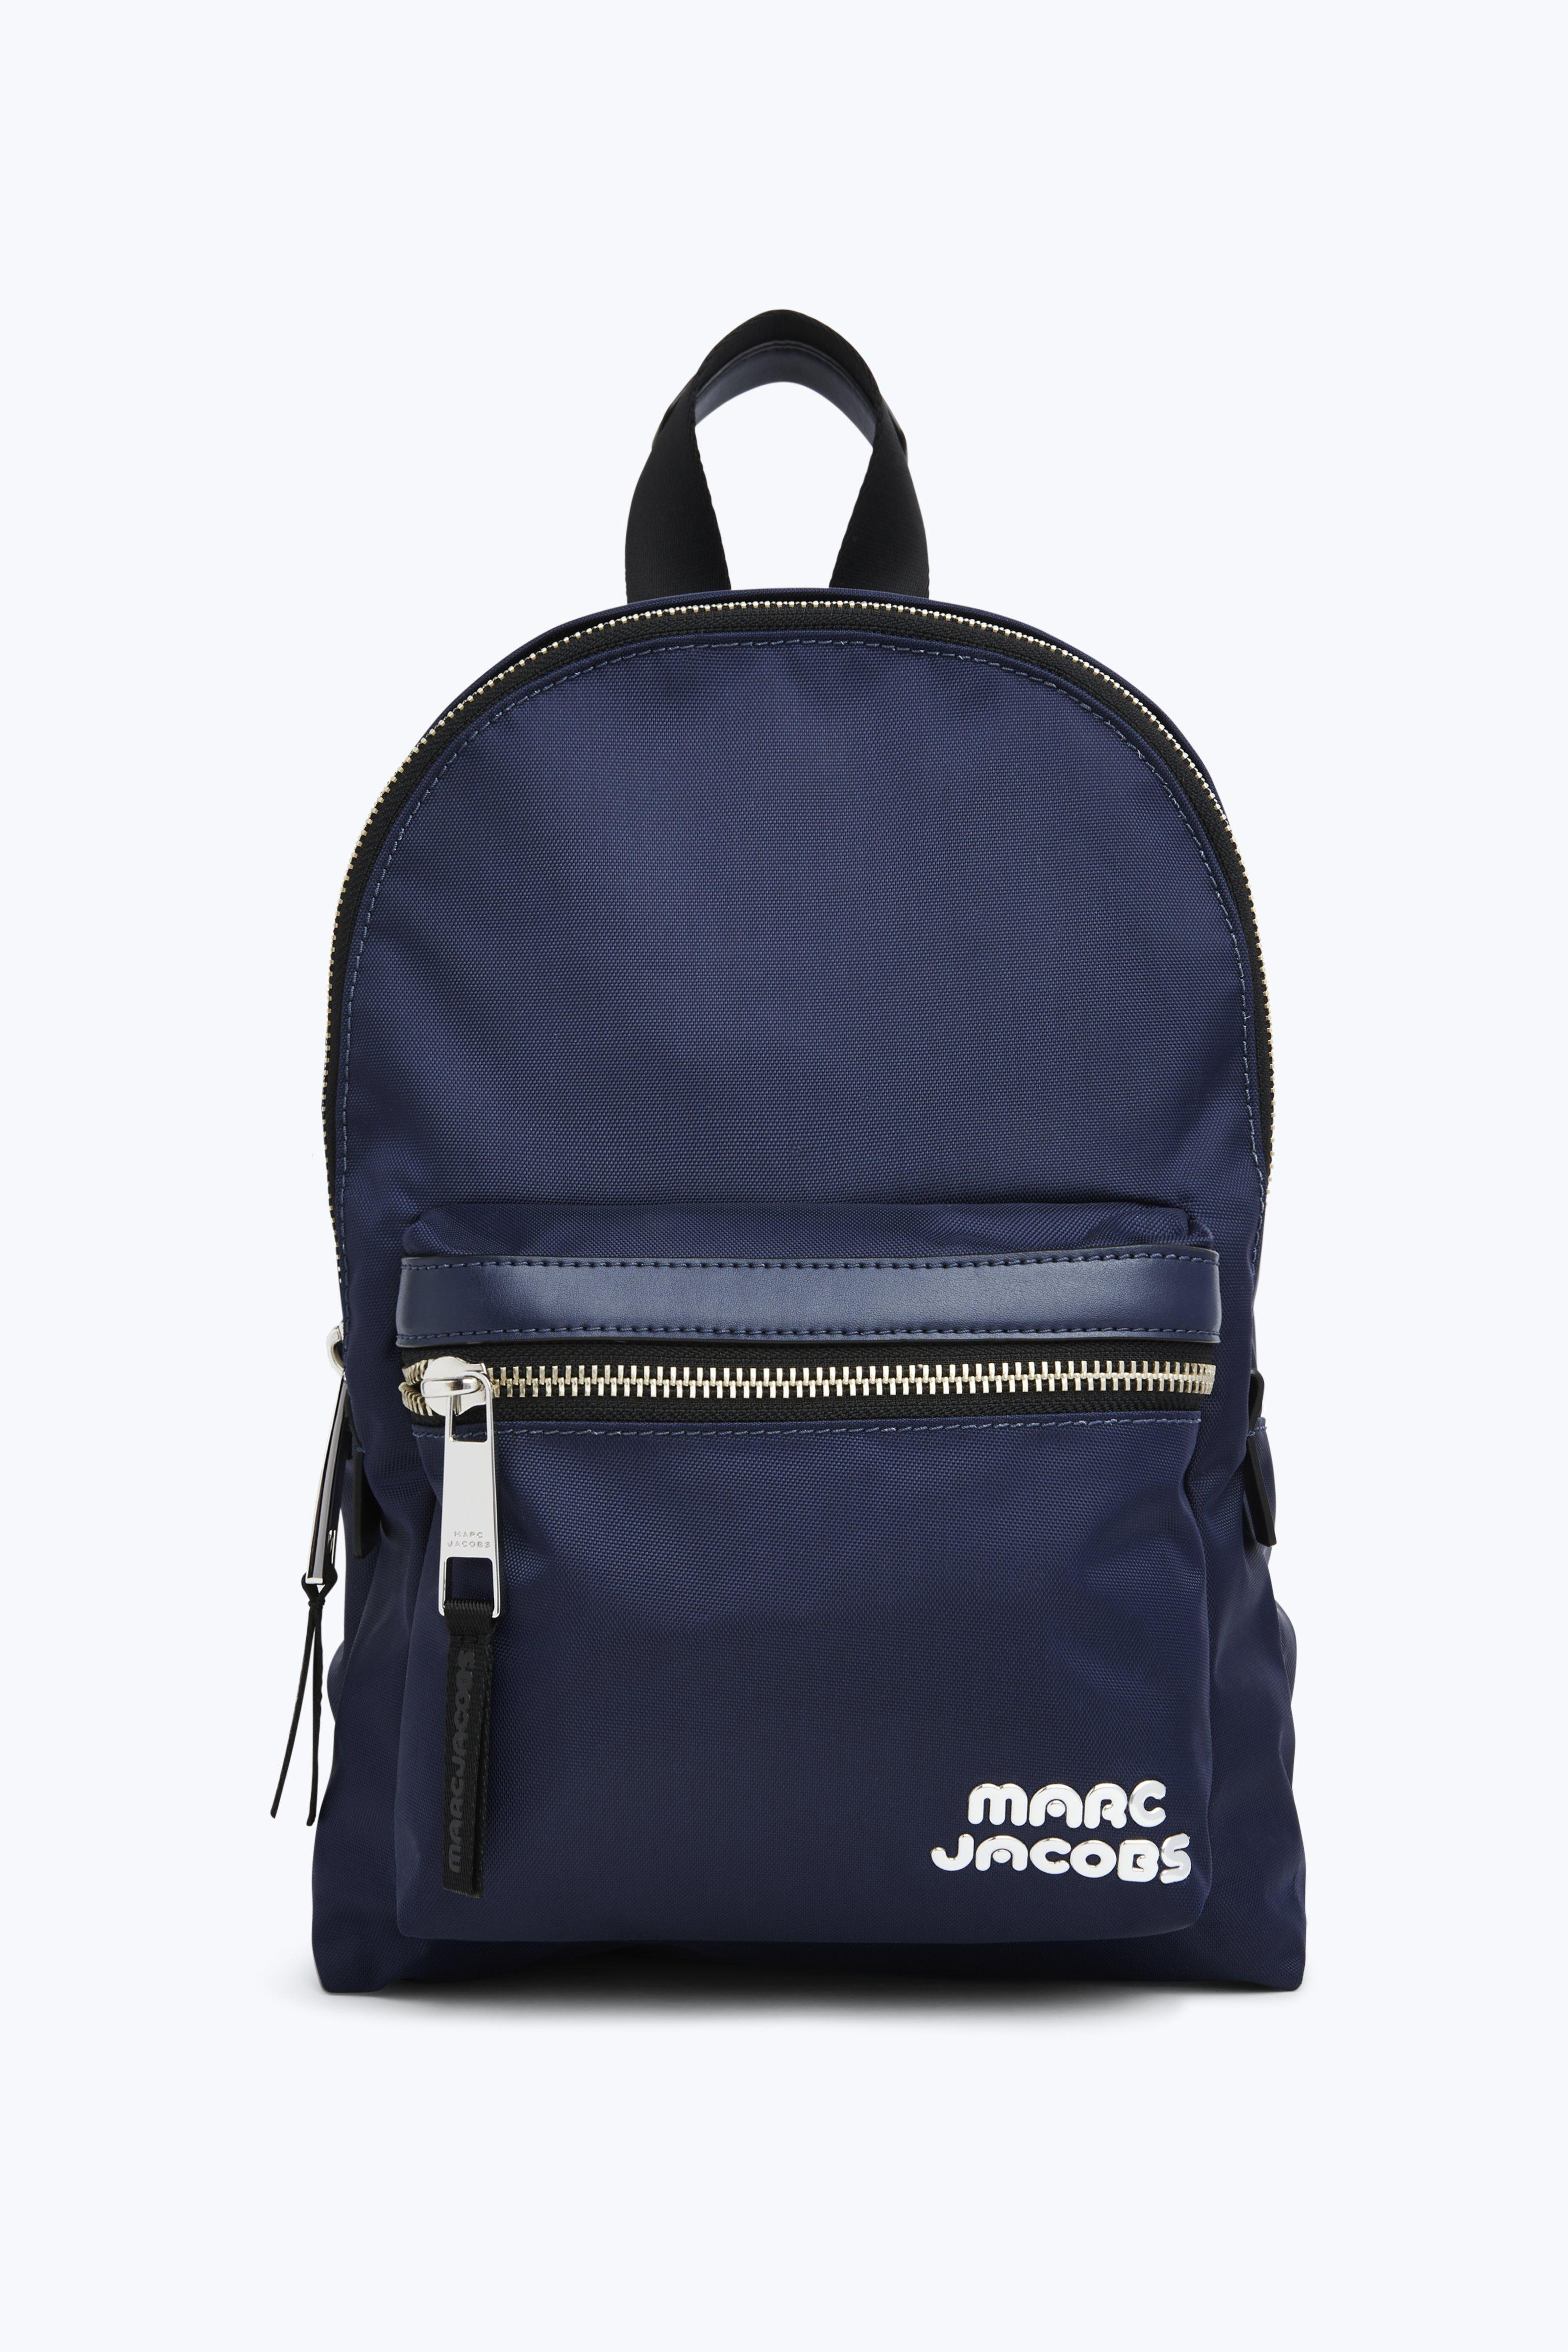 MARC JACOBS MIDNIGHT MEDIUM BACKPACK IN LEATHER